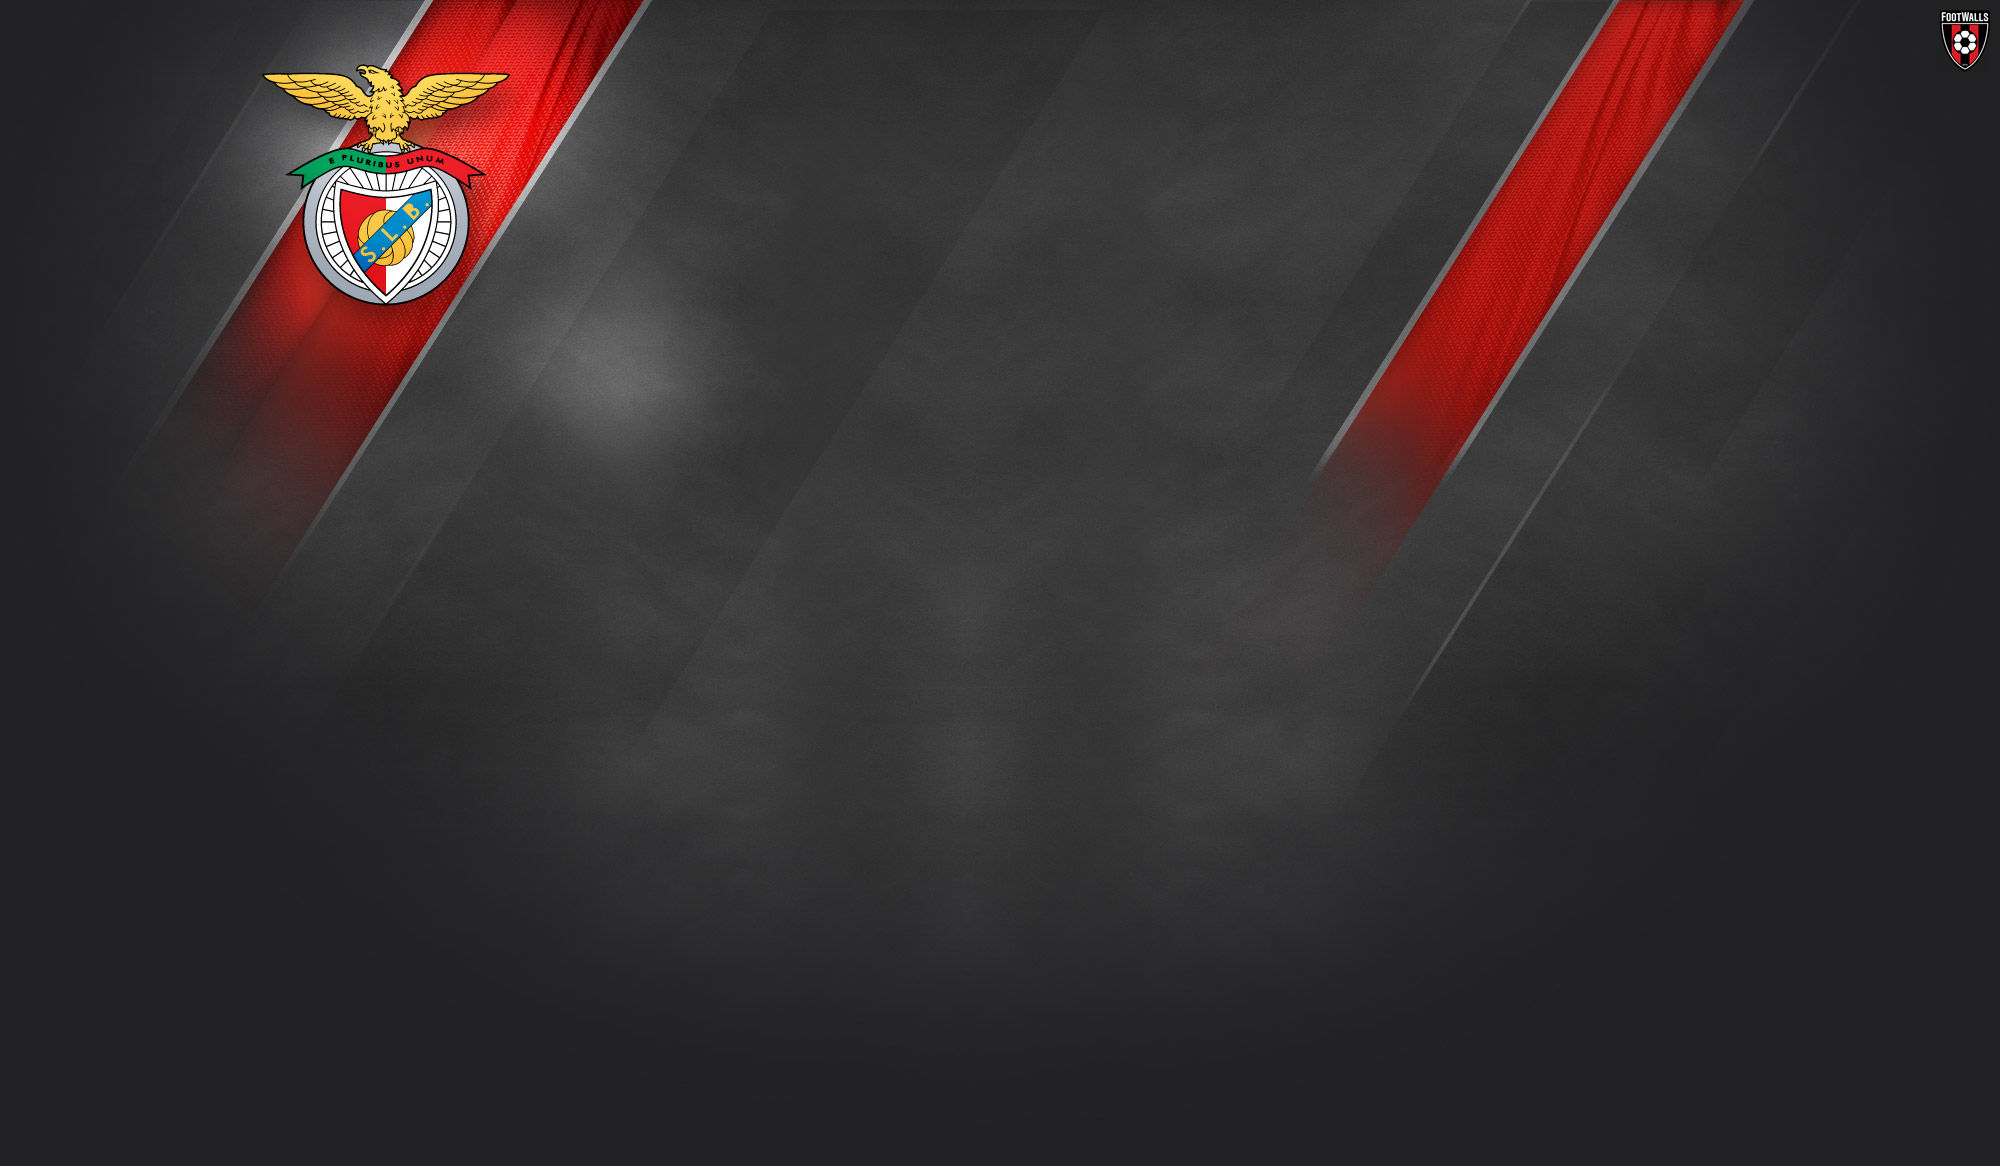 2000x1166 - S.L. Benfica Wallpapers 13